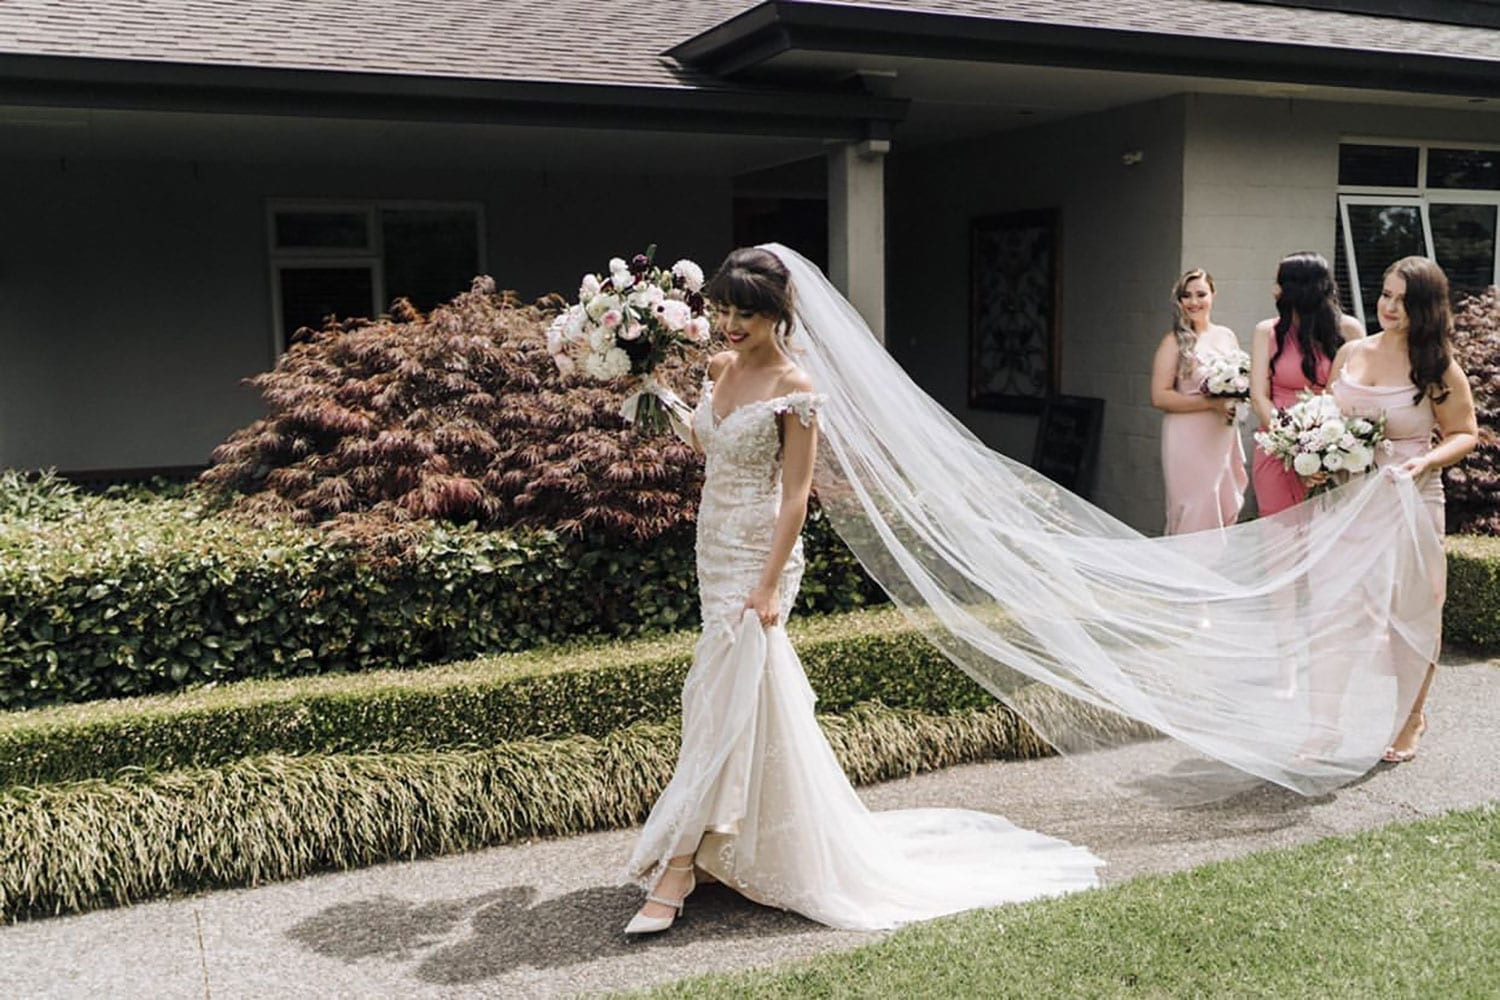 Vinka Design Features Real Weddings - bride wearing custom made beaded lace Sasha gown. Bride walks with dress train flowing and long veil held by bridesmaid